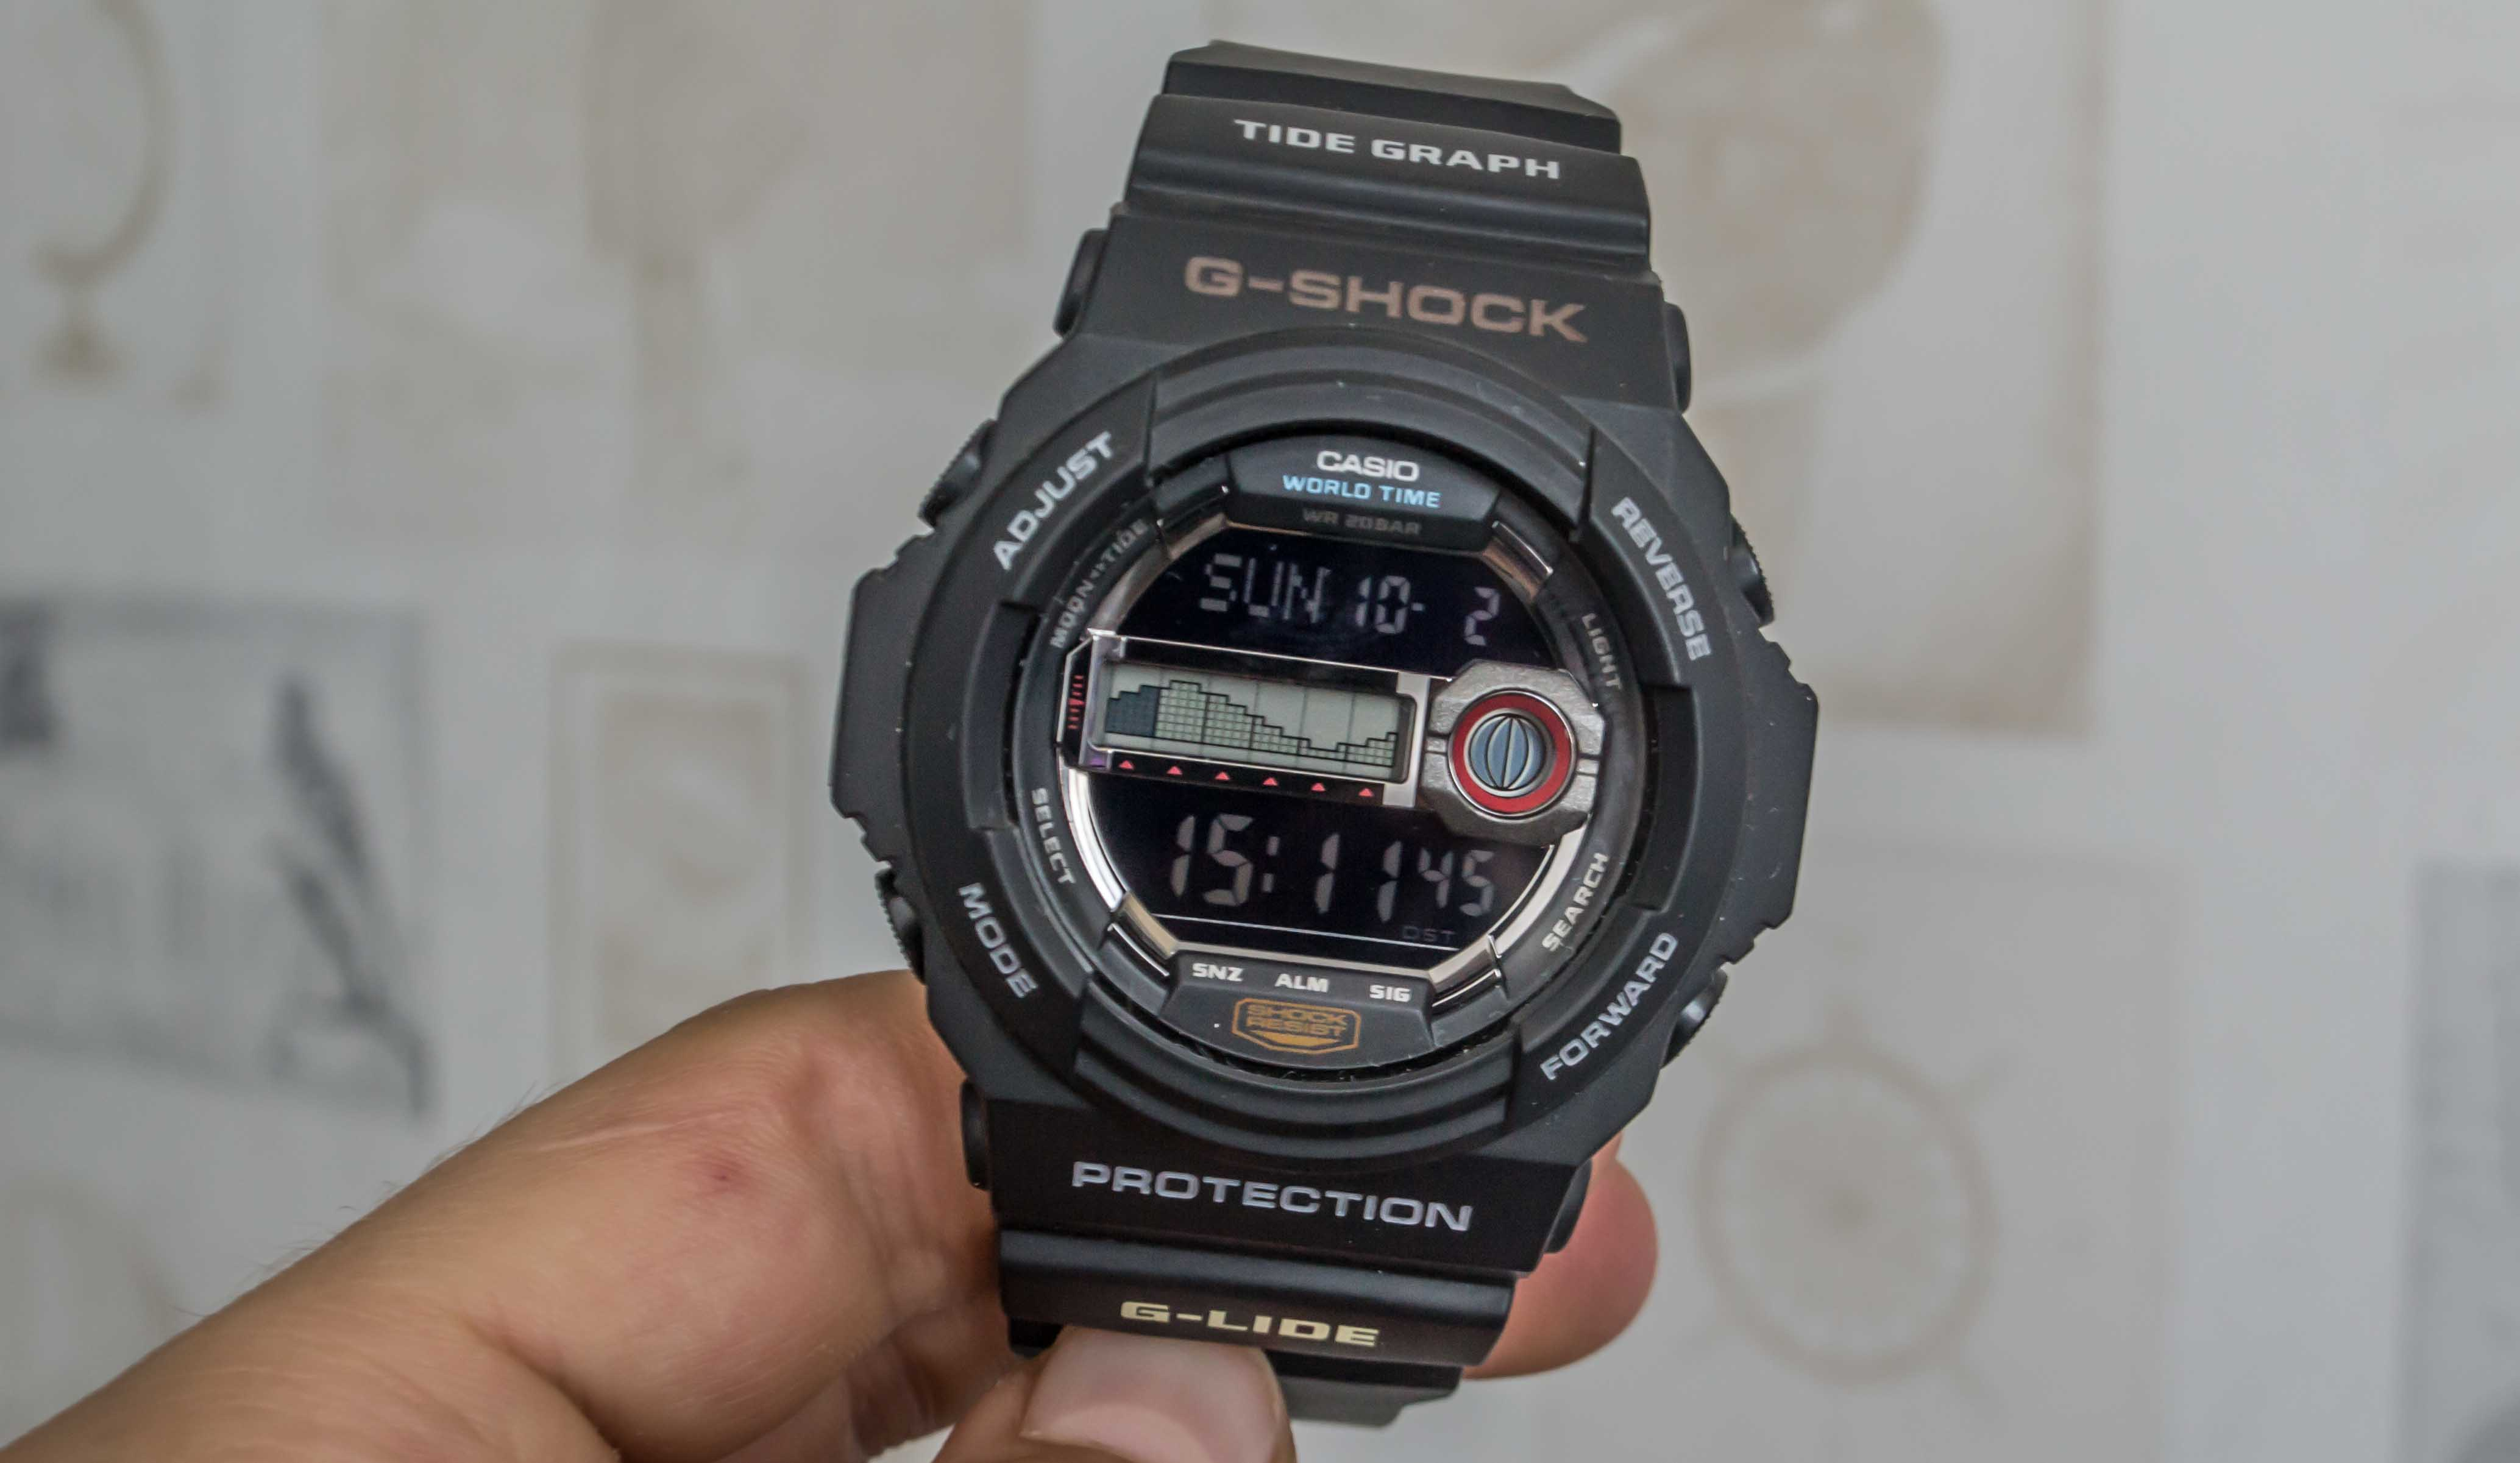 [Live Photos] G-Shock GLX-150-1 – Tide Graph and Moon Phases